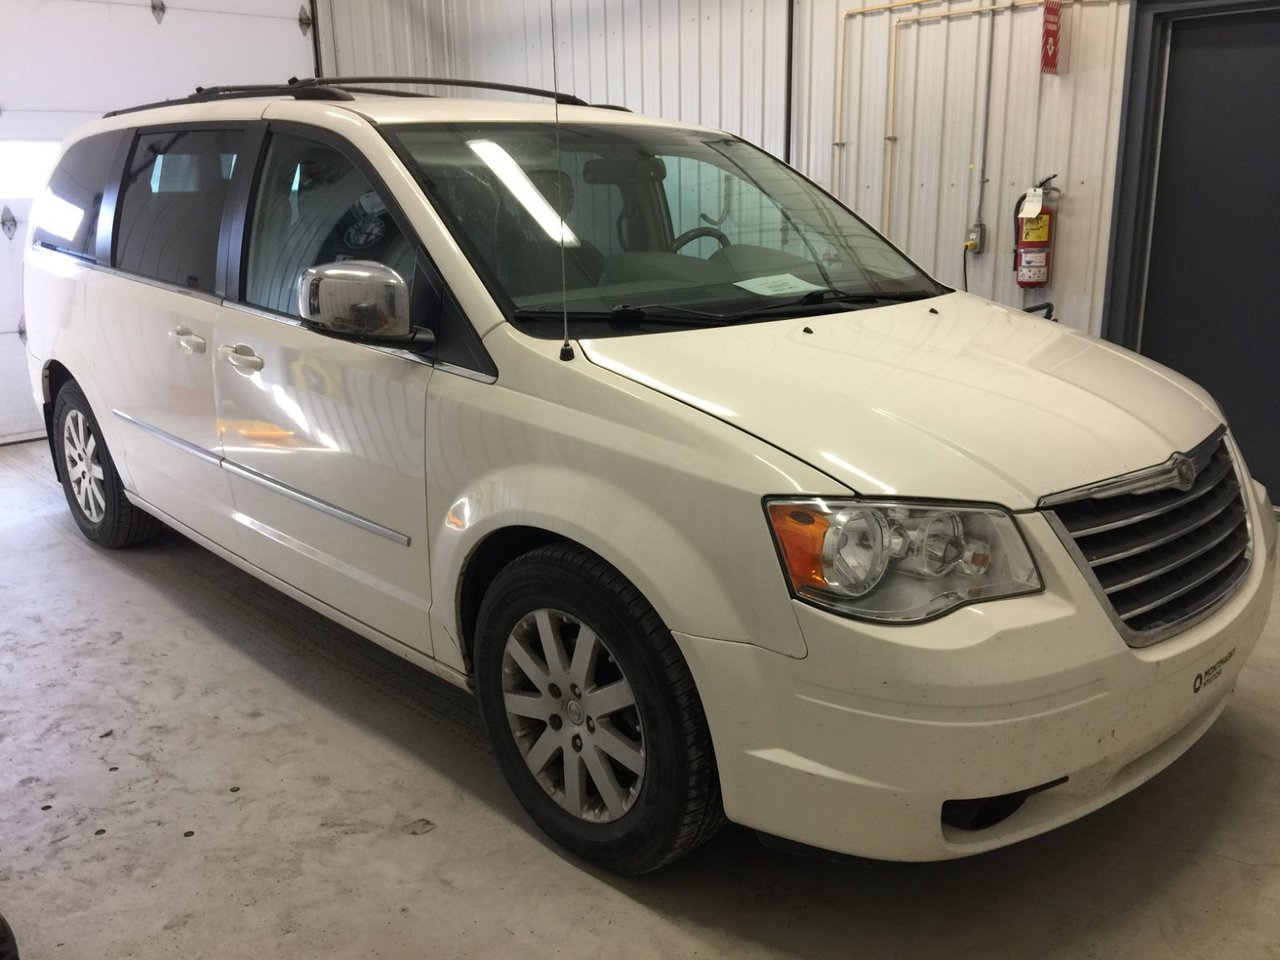 2009 Chrysler  Town & Country Touring Stow 'N Go